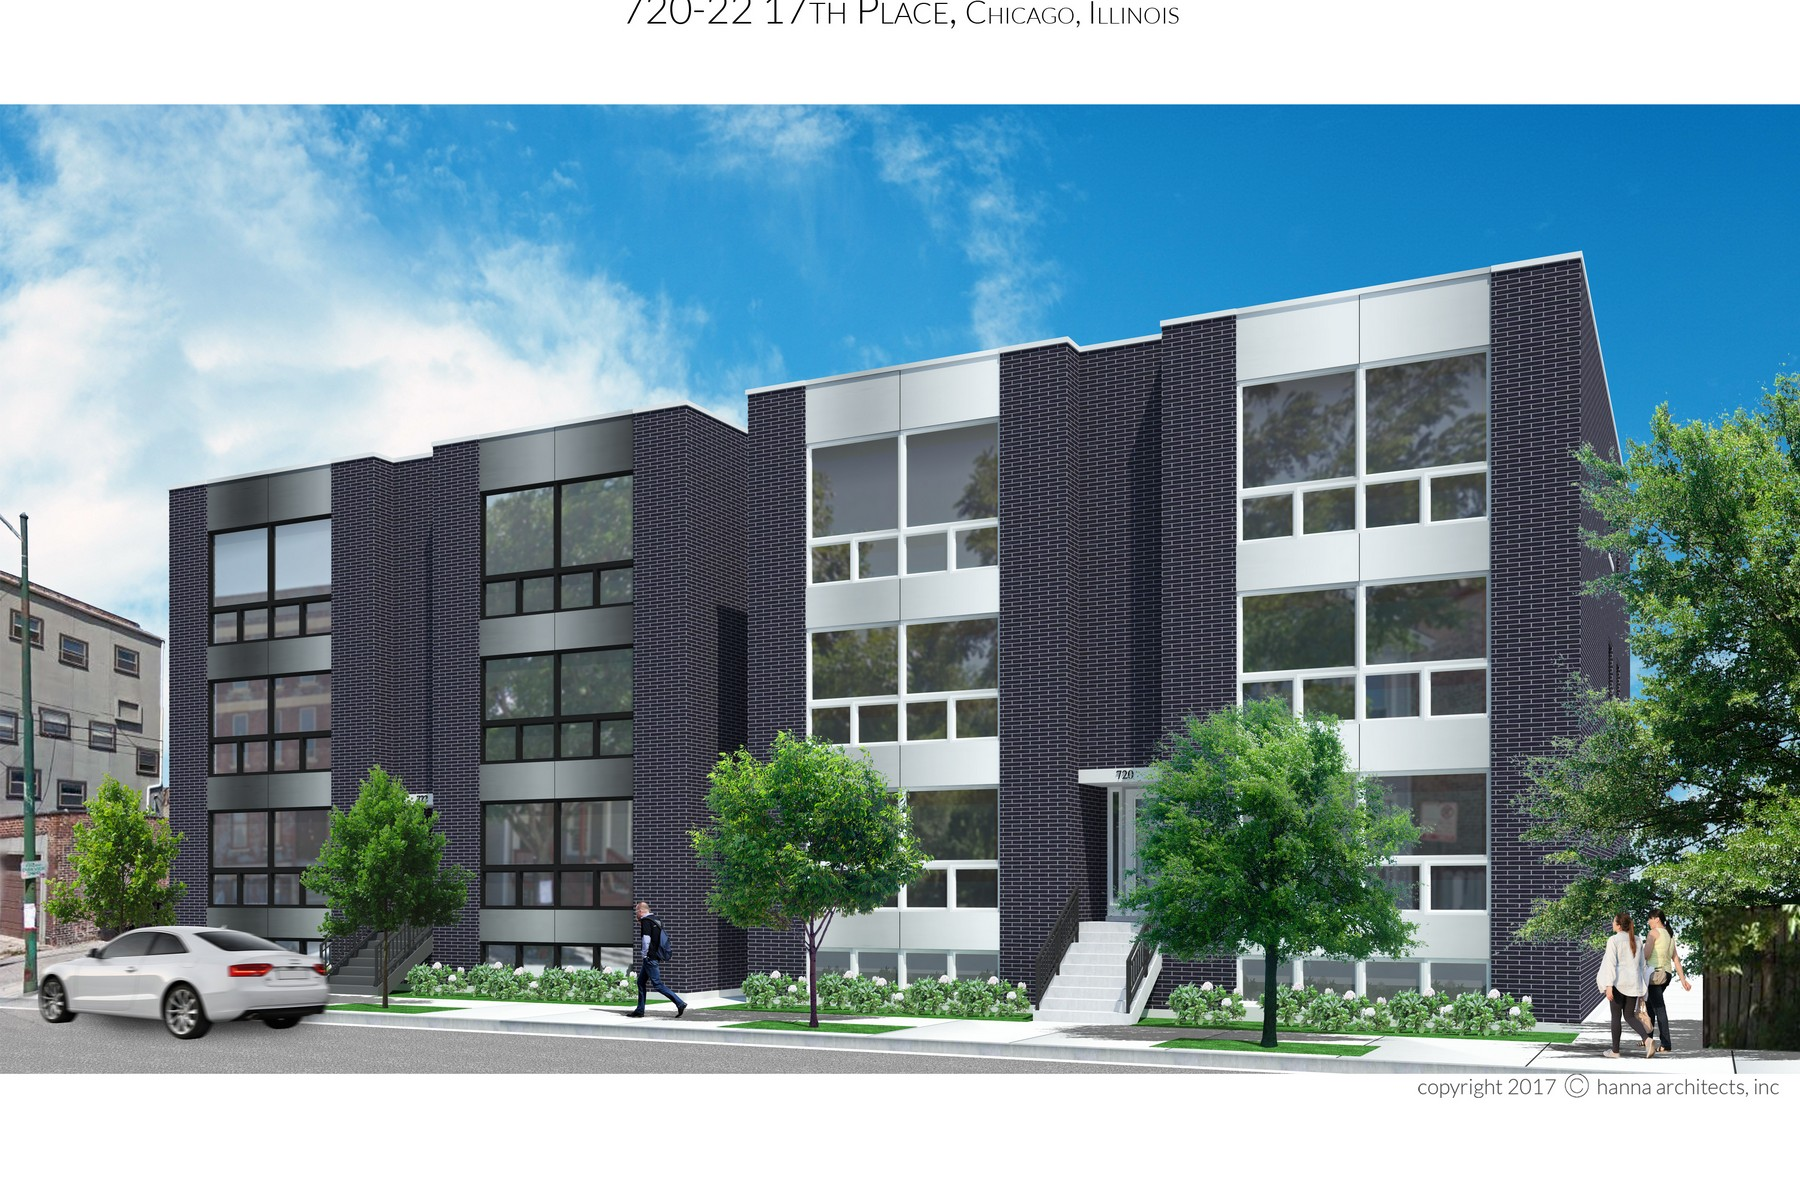 Condominium for Sale at New Construction Six-Unit Building 722 W 17th Place West Unit 1E, Chicago, Illinois, 60616 United States